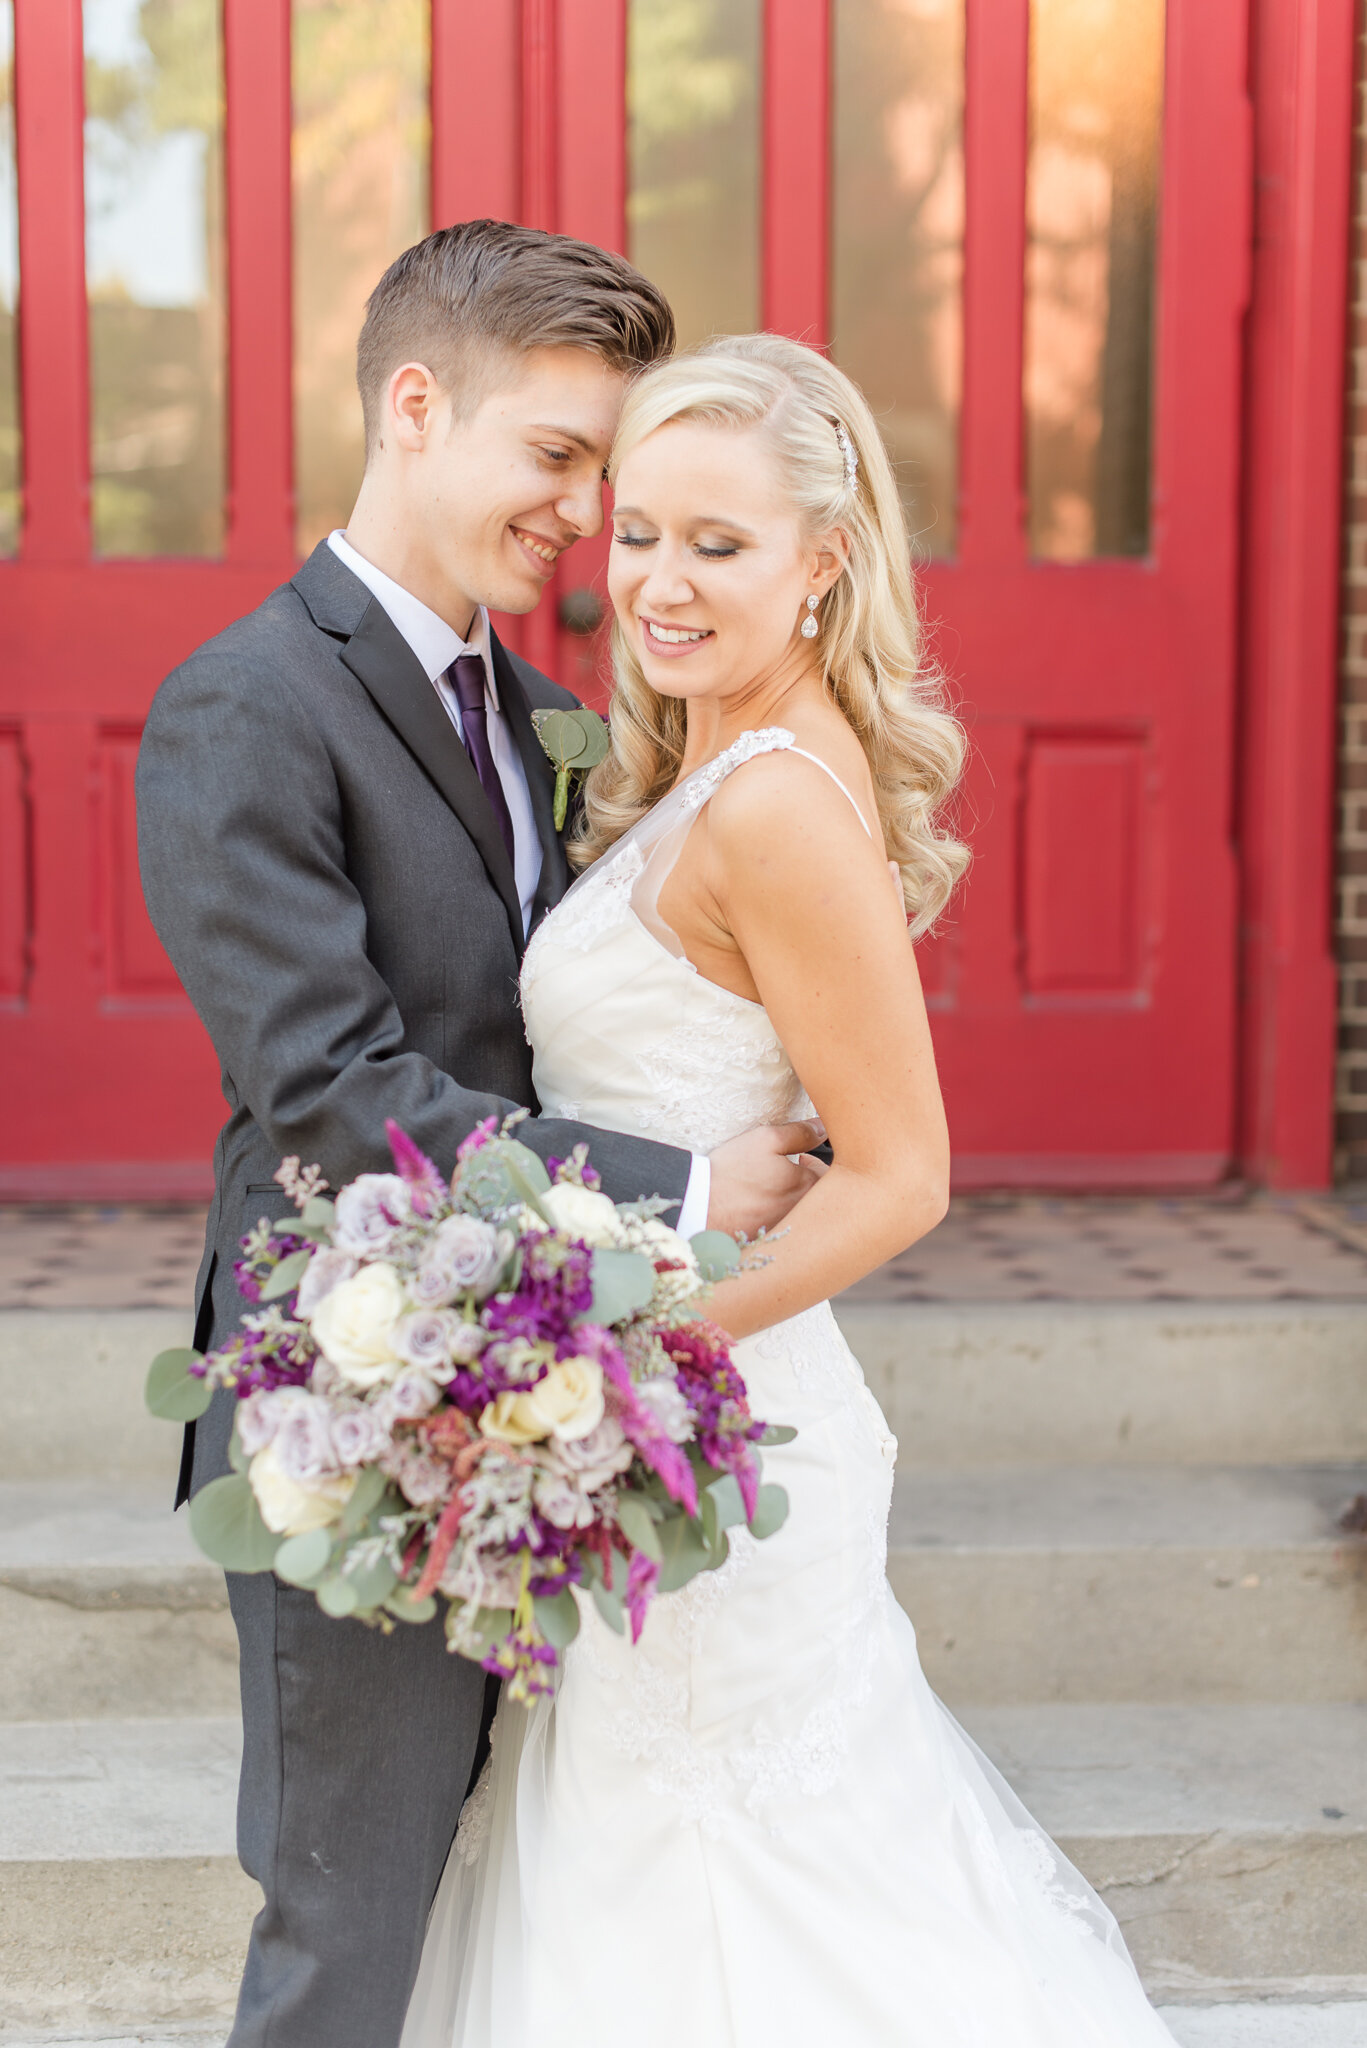 Downtown Indianapolis Wedding at Cyrus Place7515.jpg